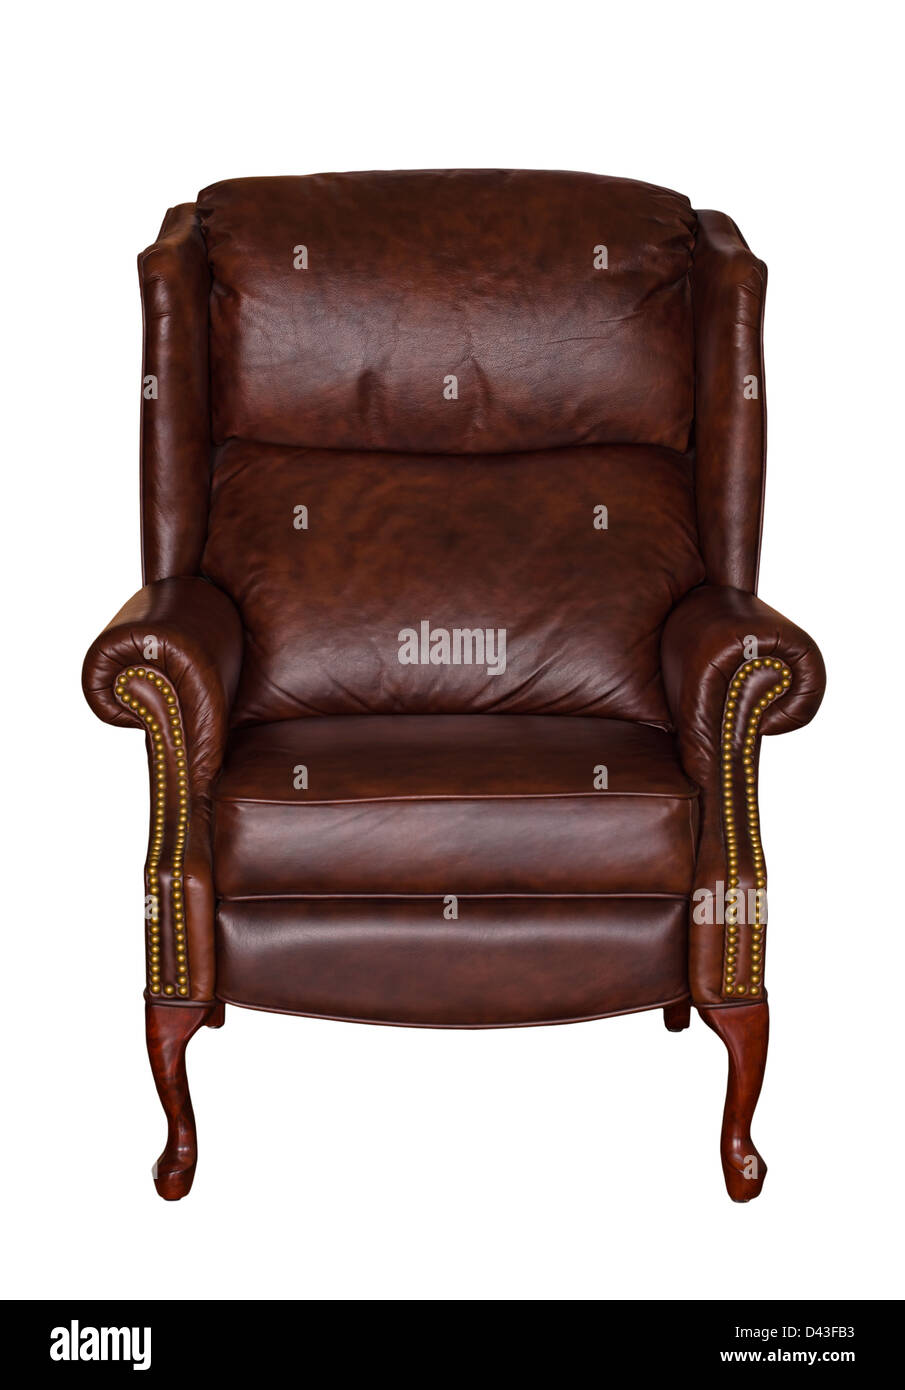 Brown Library Leather Chair Isolated Over White